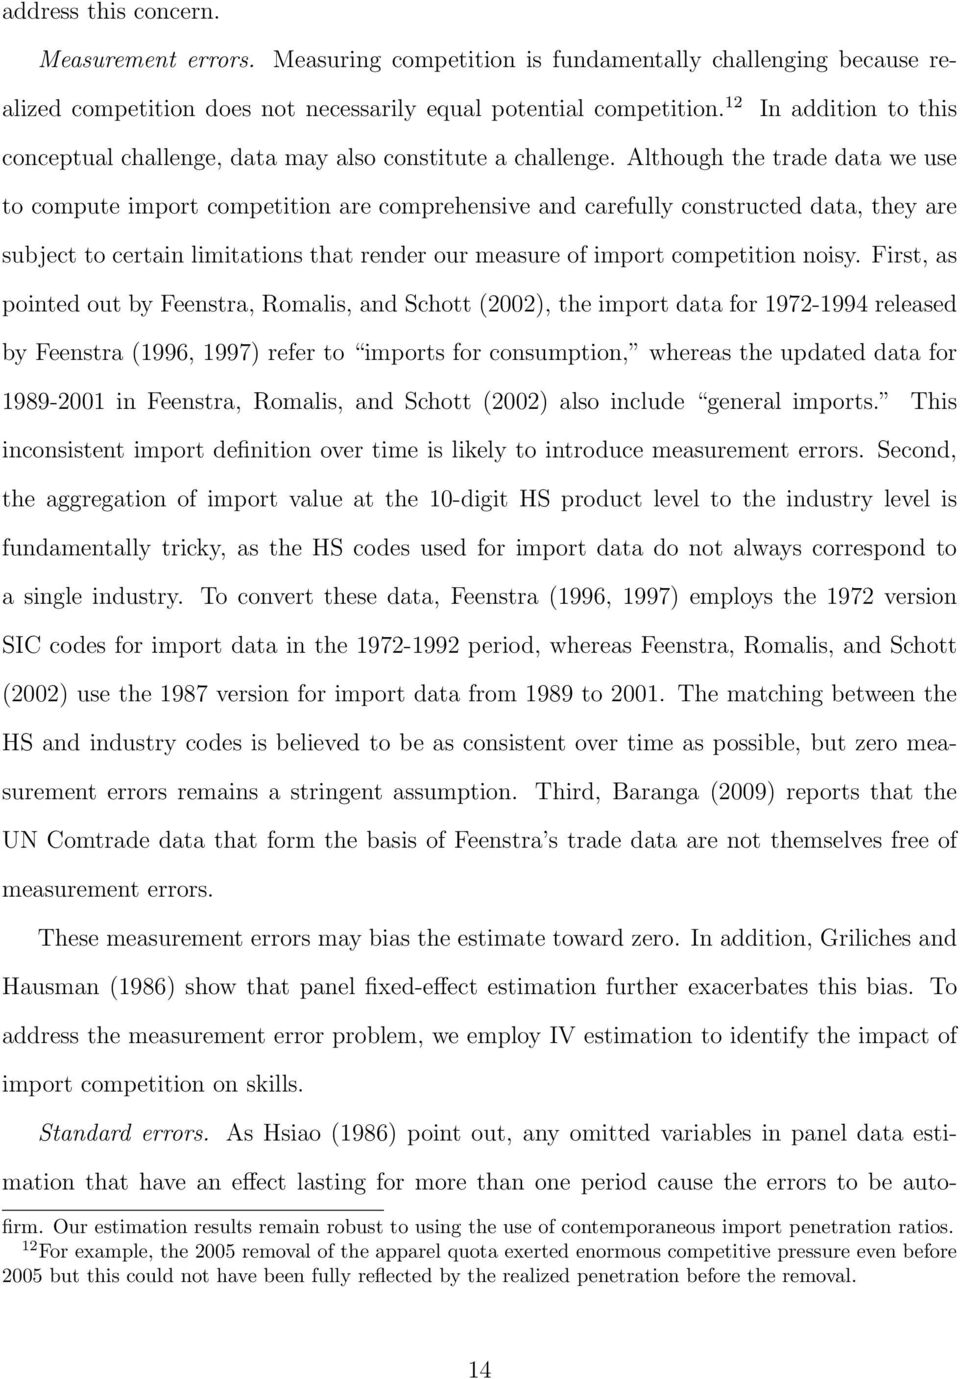 Although the trade data we use to compute import competition are comprehensive and carefully constructed data, they are subject to certain limitations that render our measure of import competition